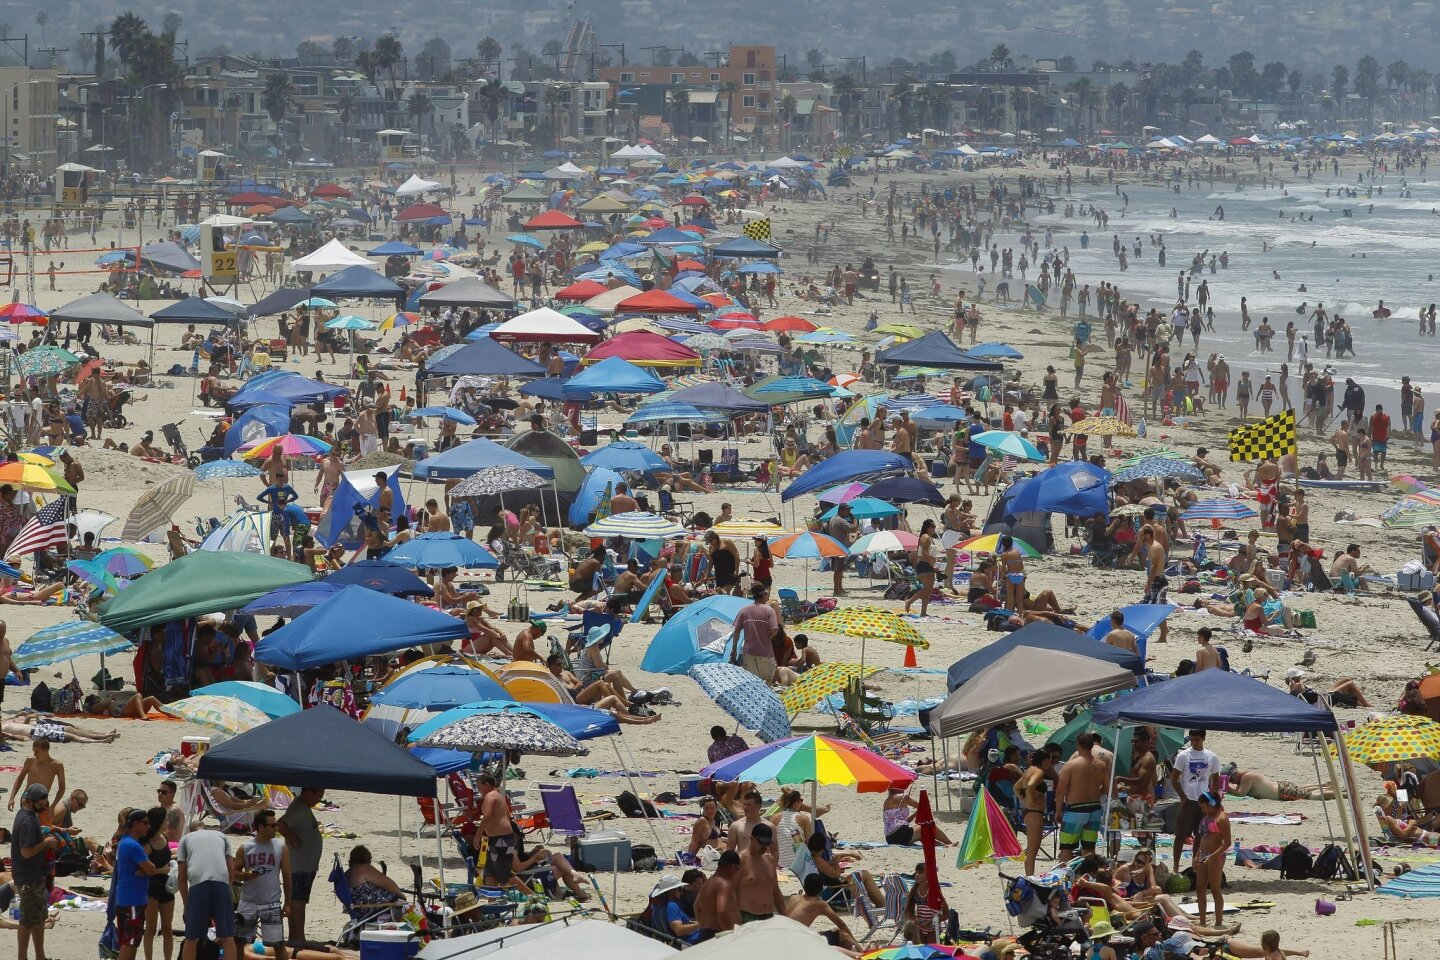 The view from the top of the main lifeguard tower in Pacific Beach shows thousands of people, with their towels, umbrellas, and canopies, covering the beach at Pacific Beach south to Mission Beach on the 4th of July in San Diego on Friday.